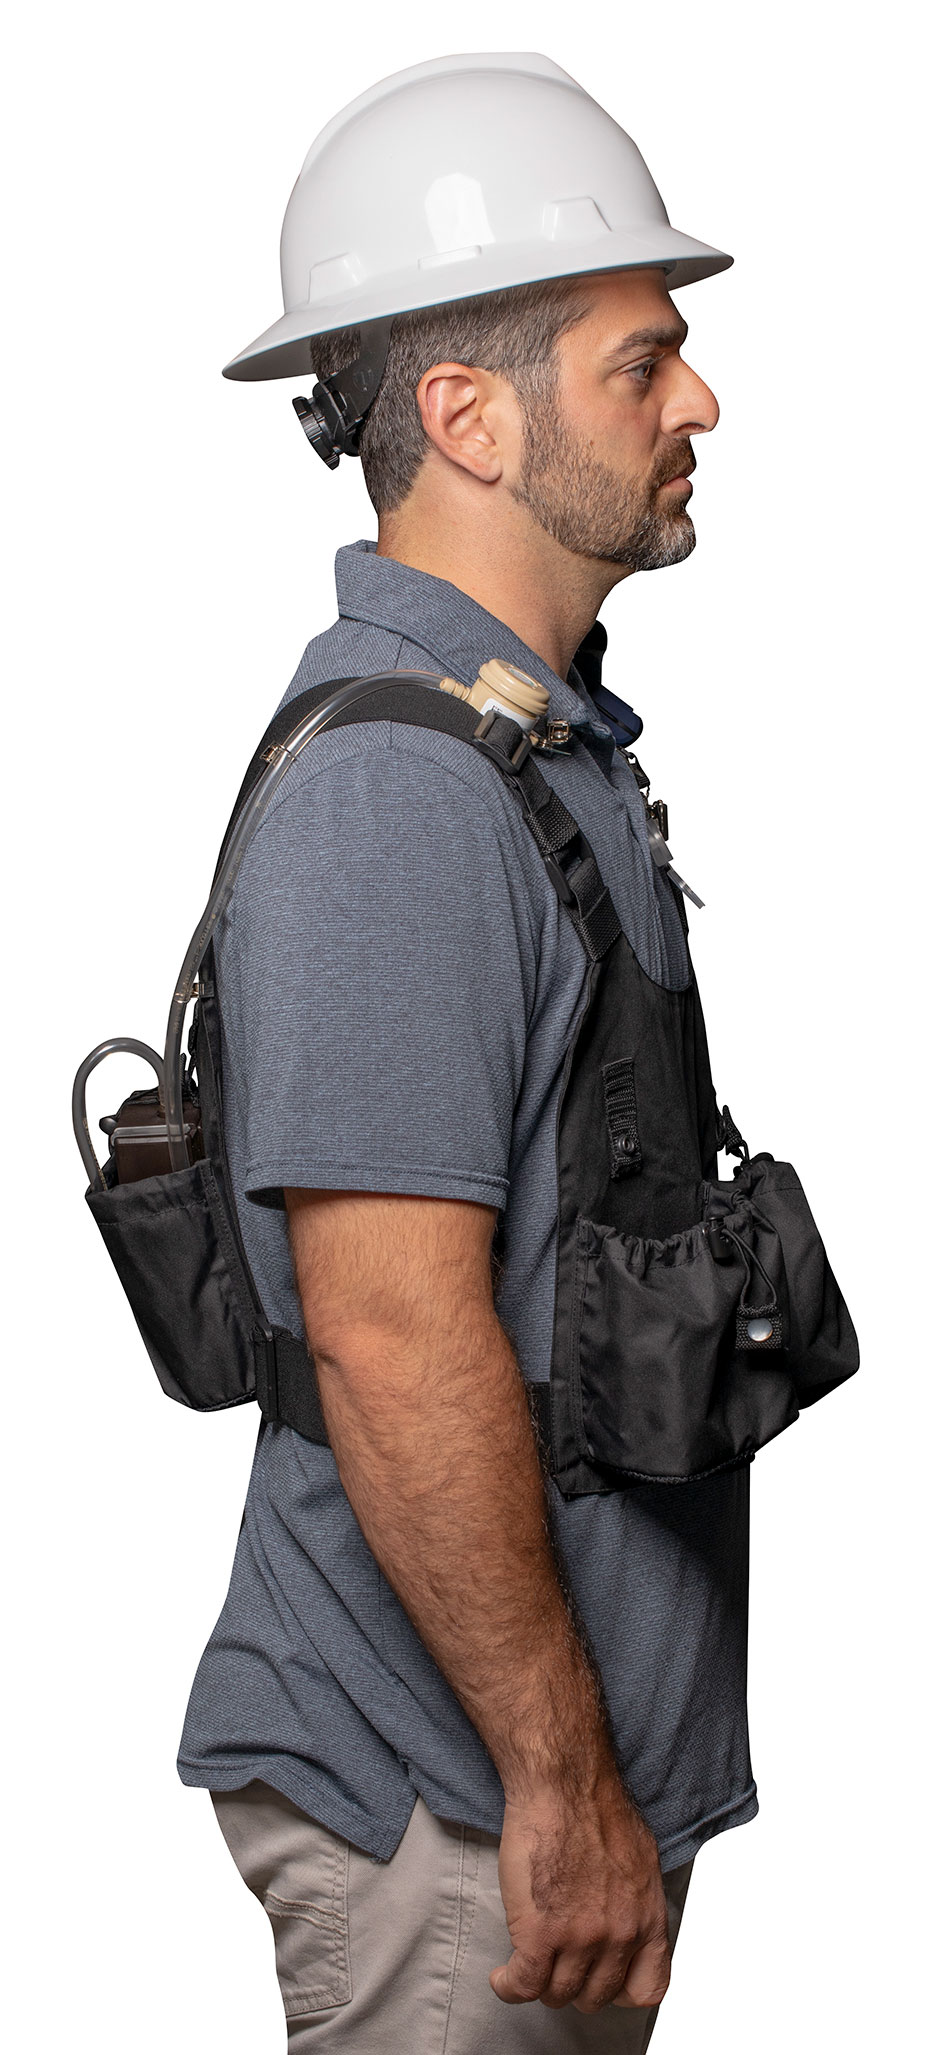 SGS Galson Personal Exposure Vest